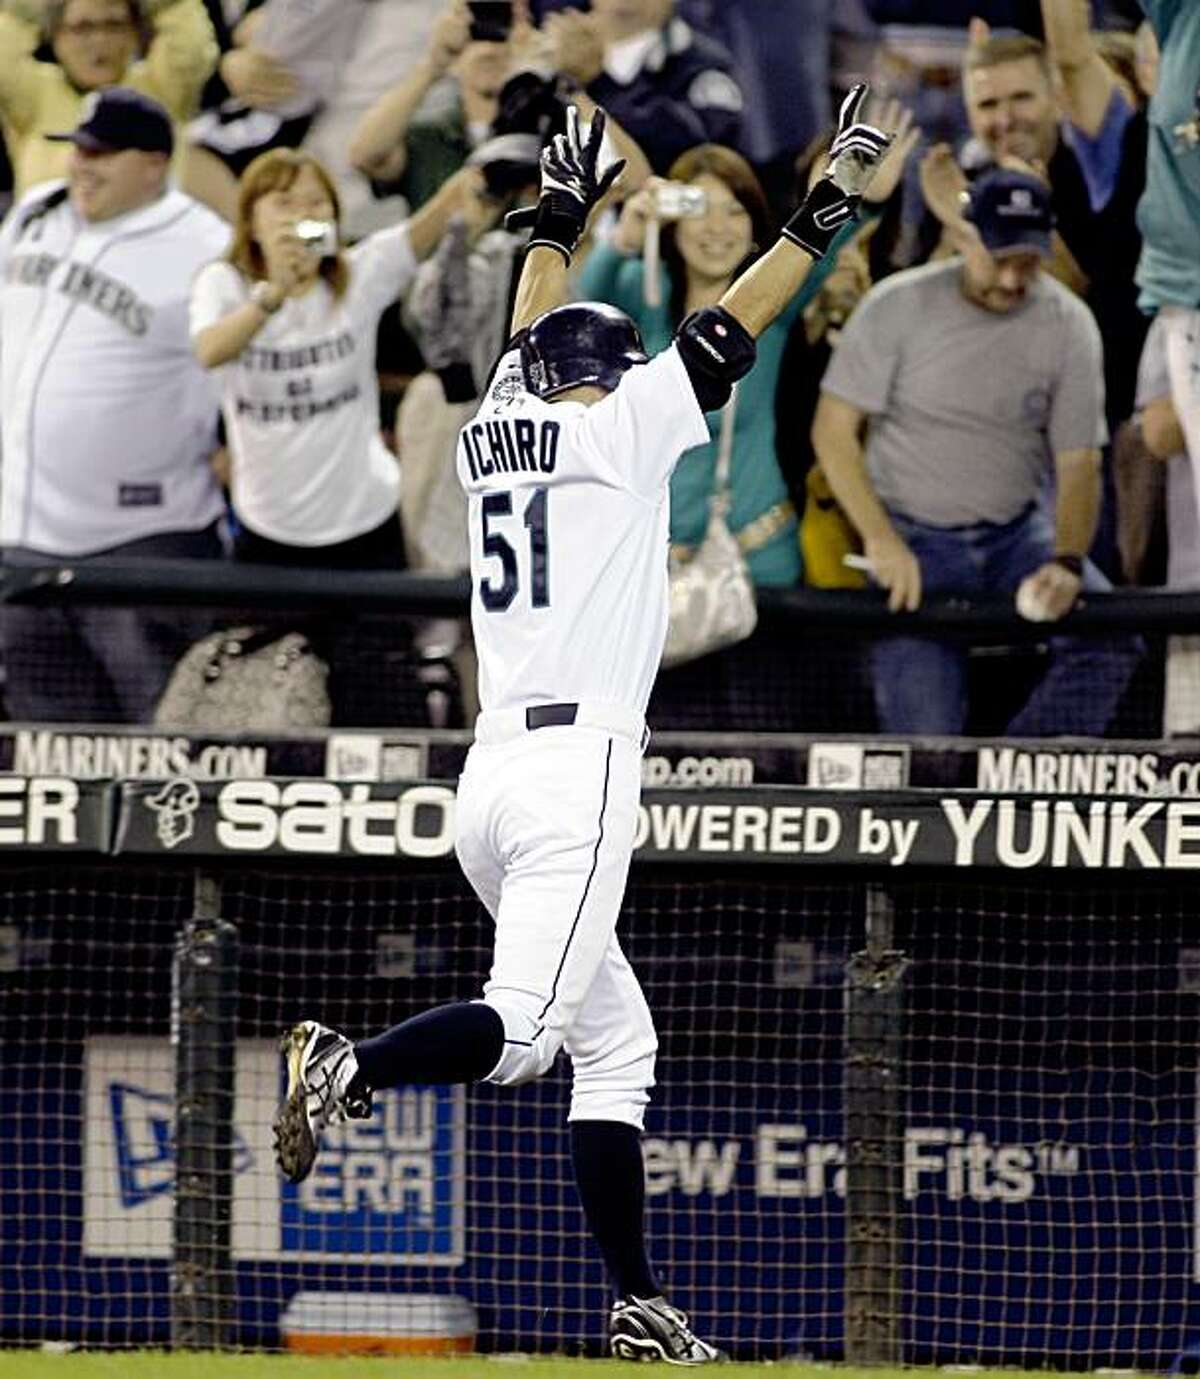 Seattle Mariners' Ichiro Suzuki (51) celebrates with fans after he hit a walk-off RBI-single in the 14th inning that gave the Mariners a 4-3 win over the Chicago White Sox, Thursday, Sept. 17, 2009, in an extra-innings baseball game at Safeco Field in Seattle. (AP Photo/Ted S. Warren)